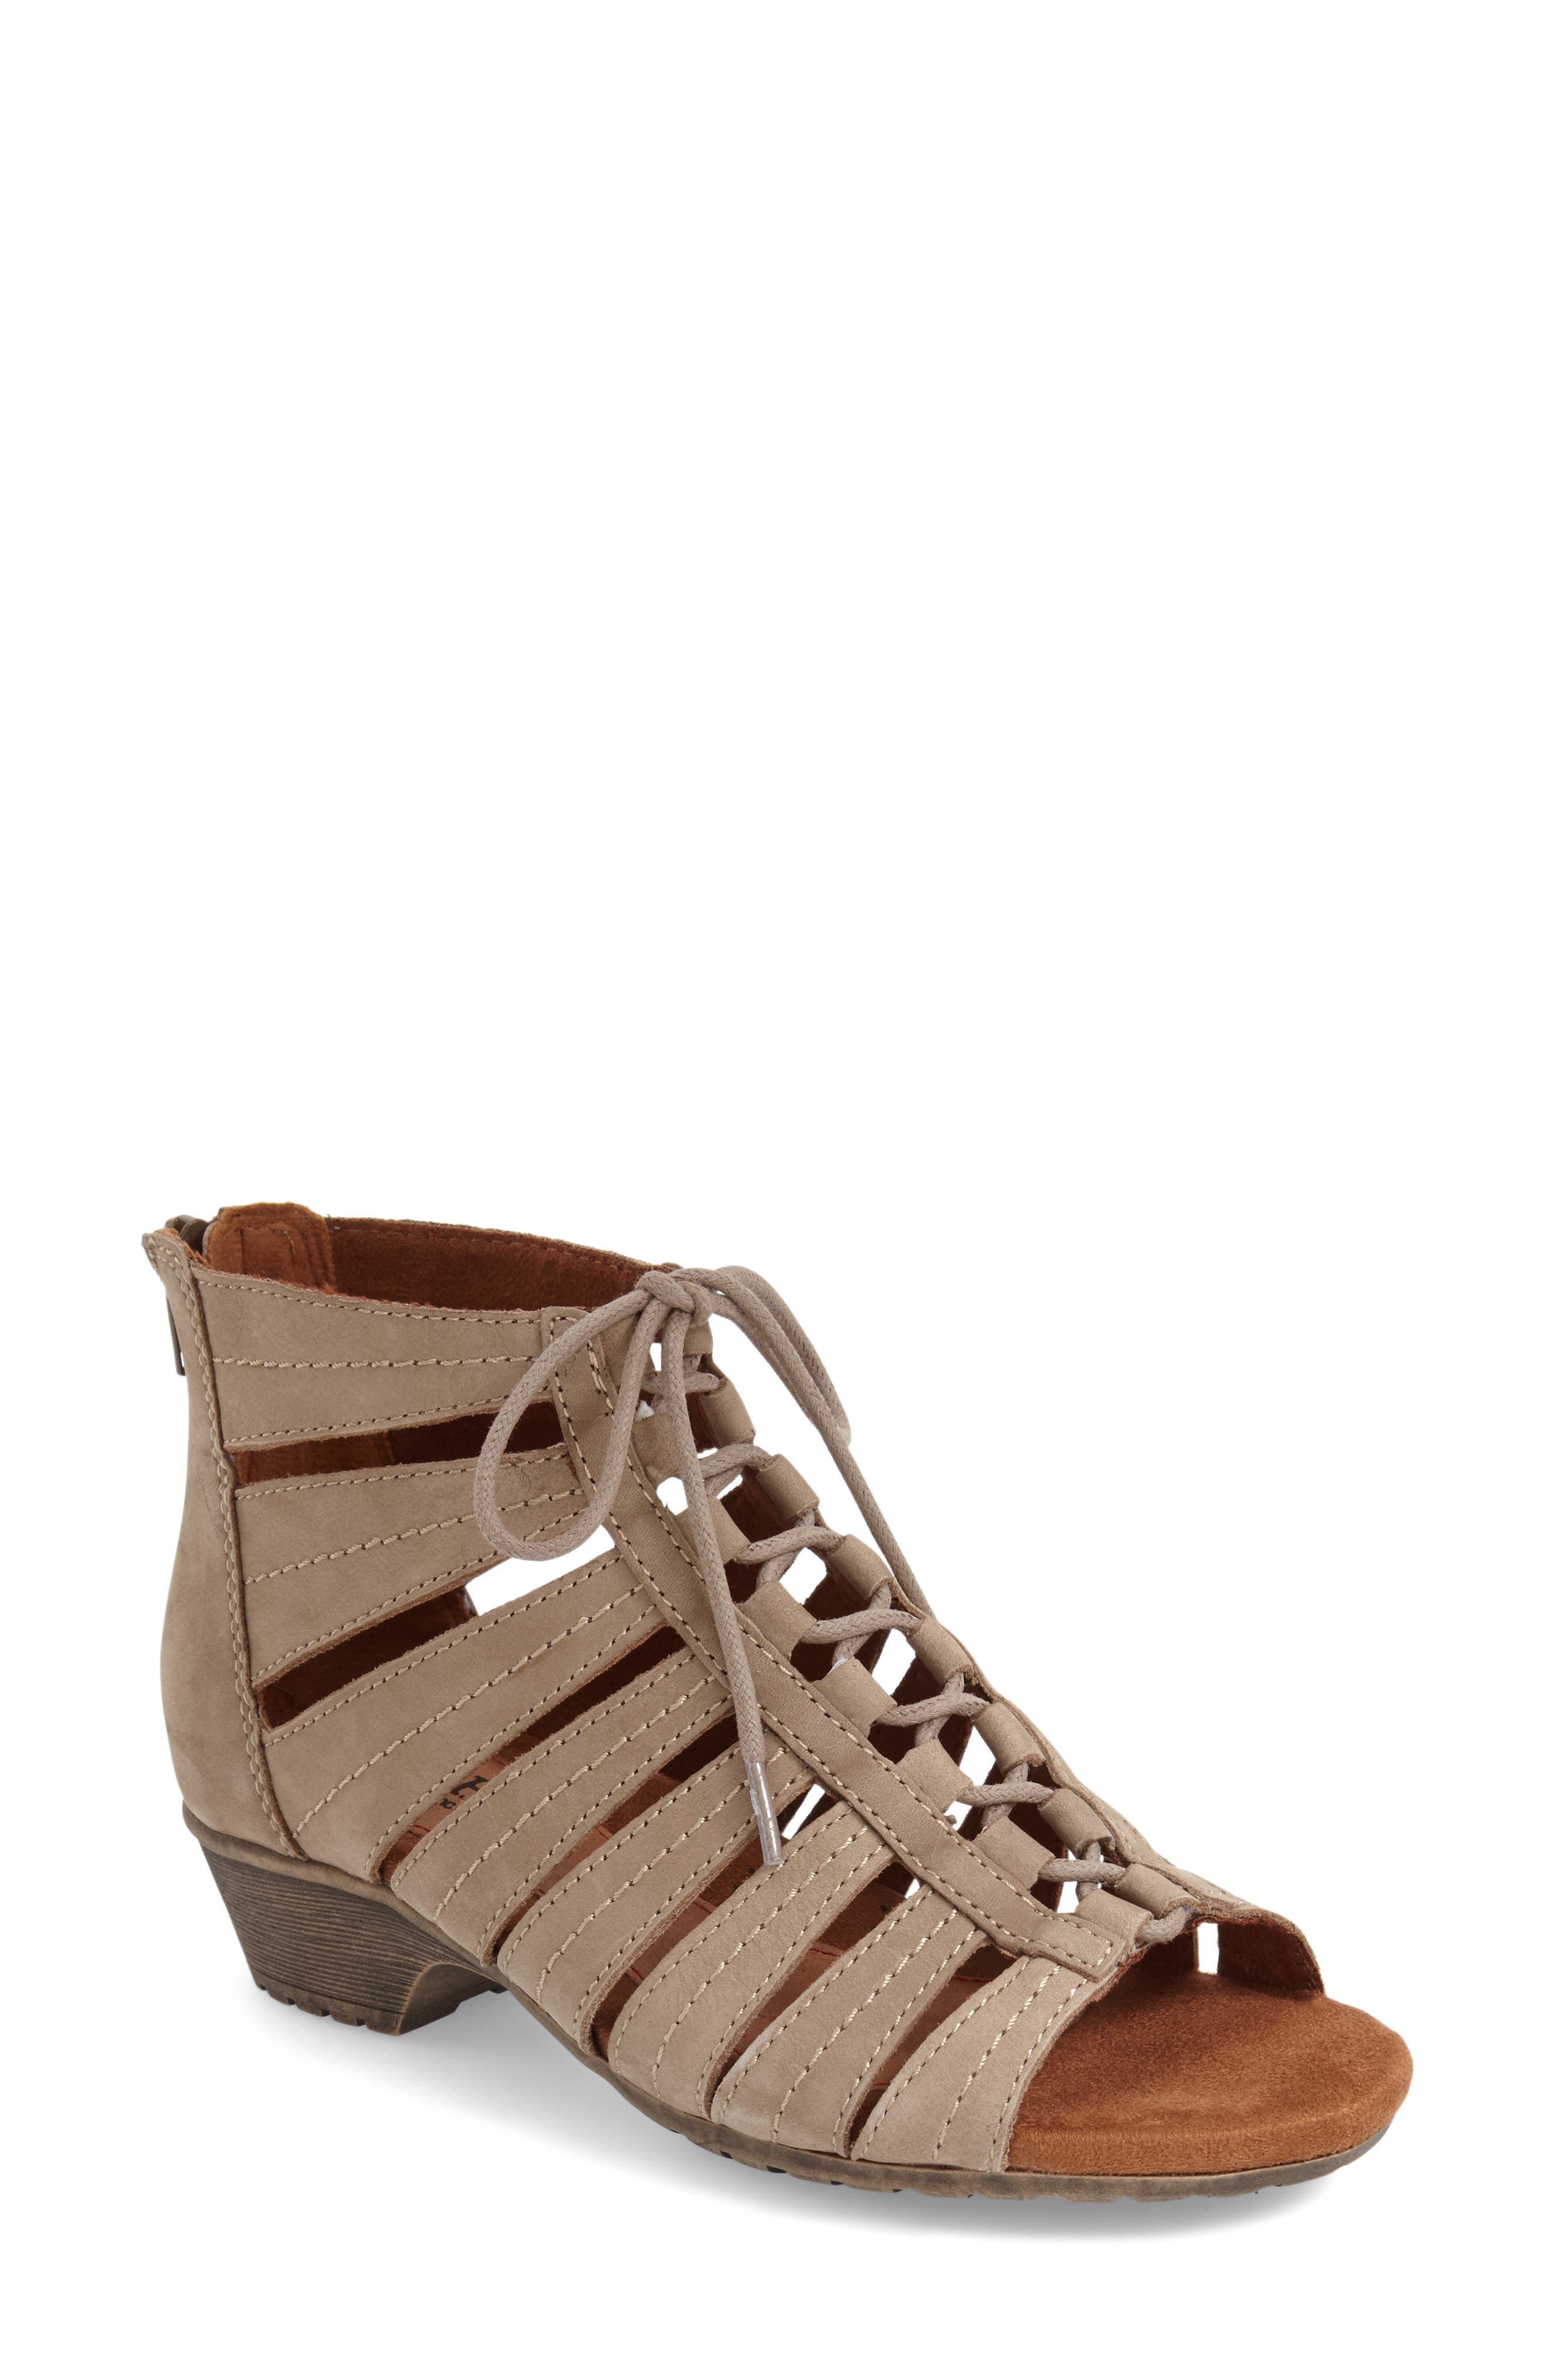 'Gabby' Lace-Up Sandal,                             Alternate thumbnail 30, color,